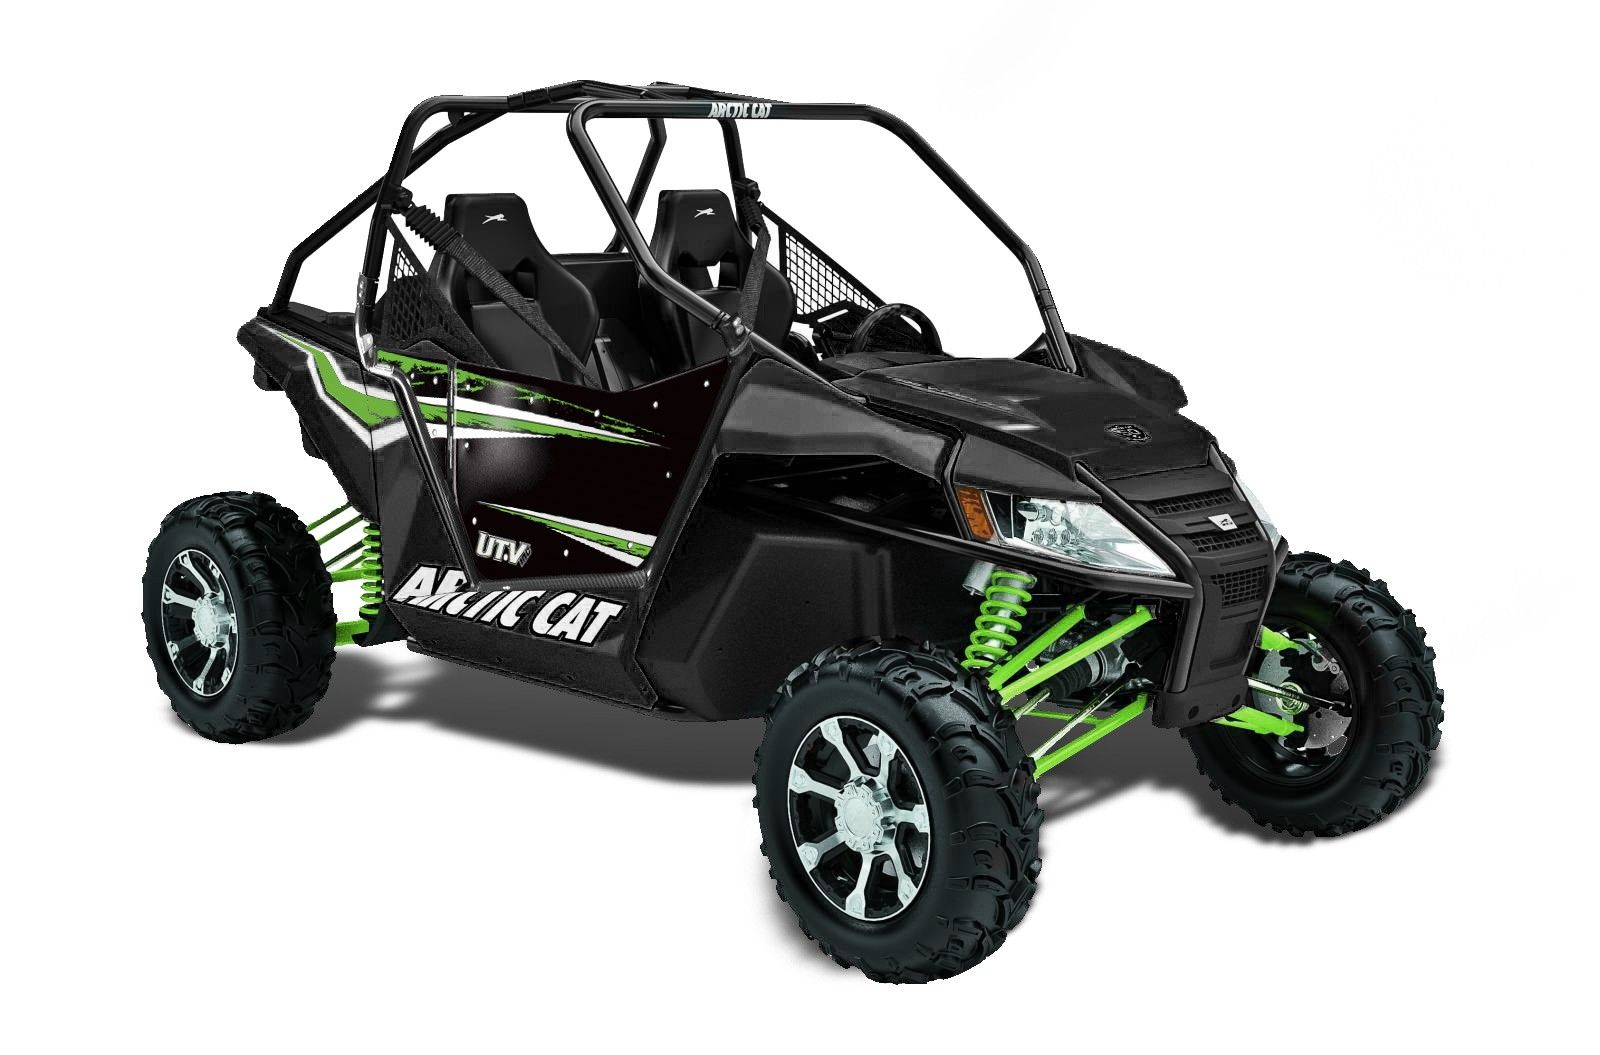 Arctic Cat 4x4 Wild cats, Atv accessories, Utv accessories